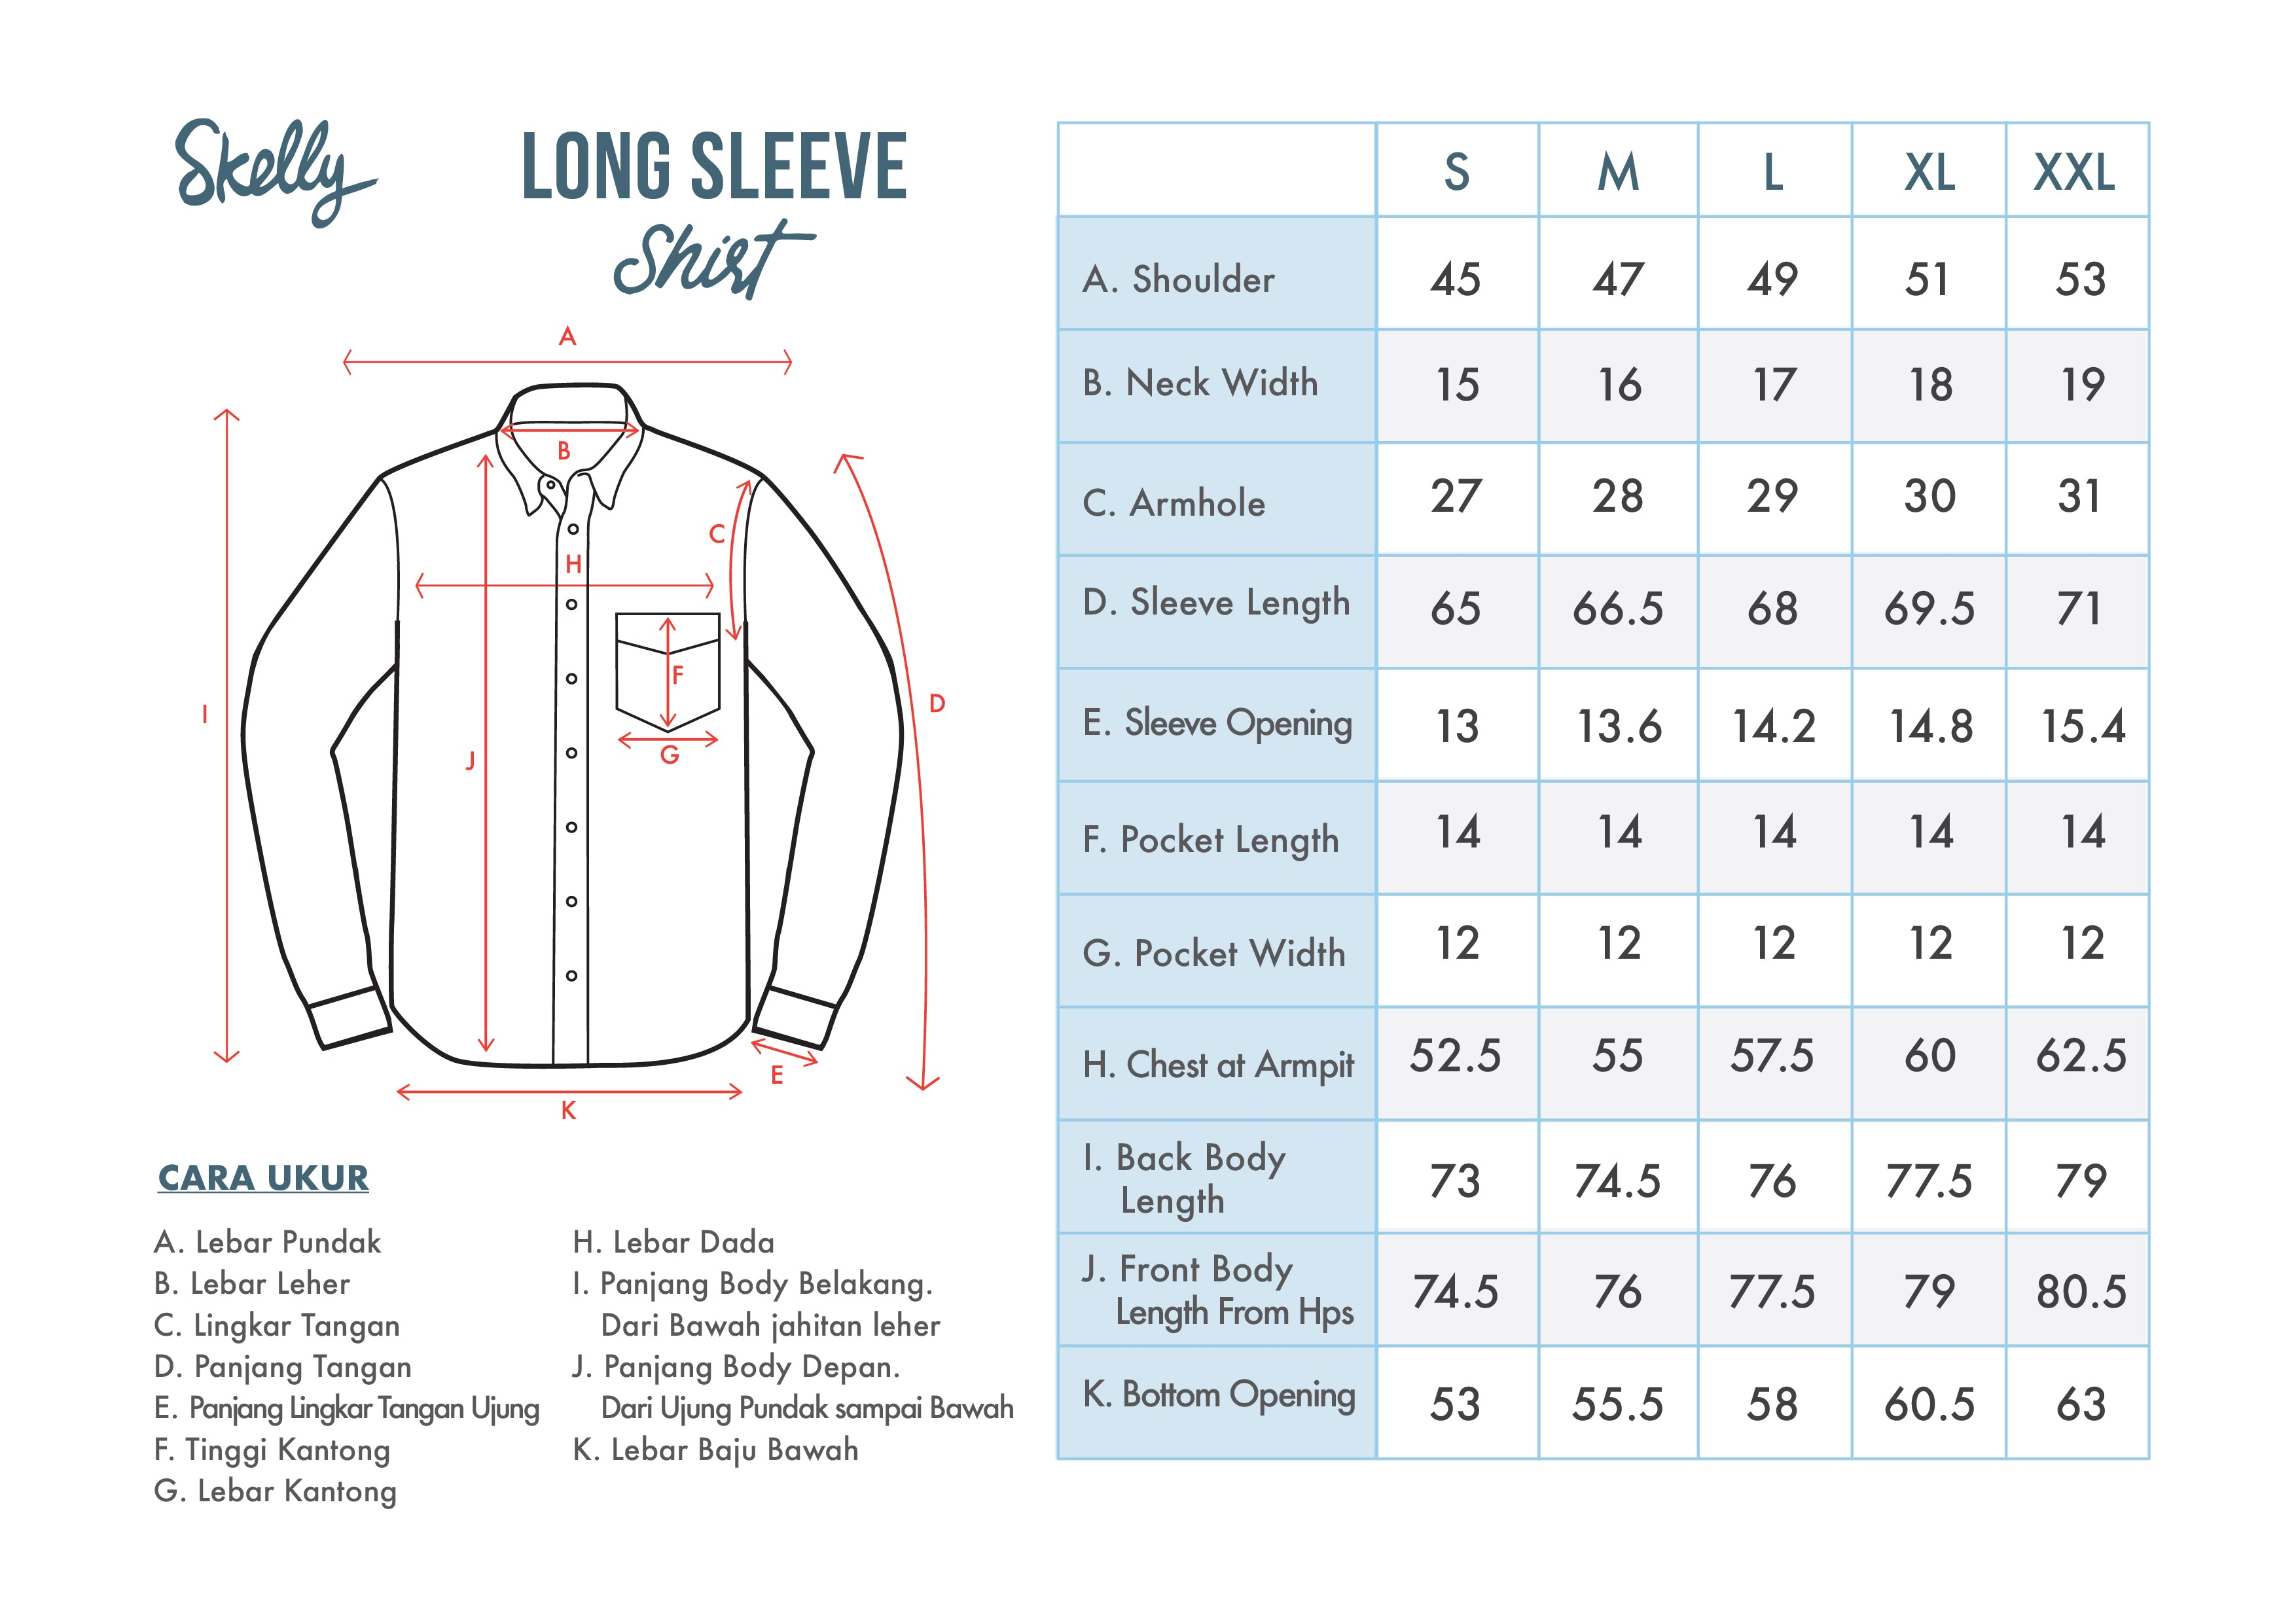 Long Sleeve Shirts - Standard Fit - Size Chart